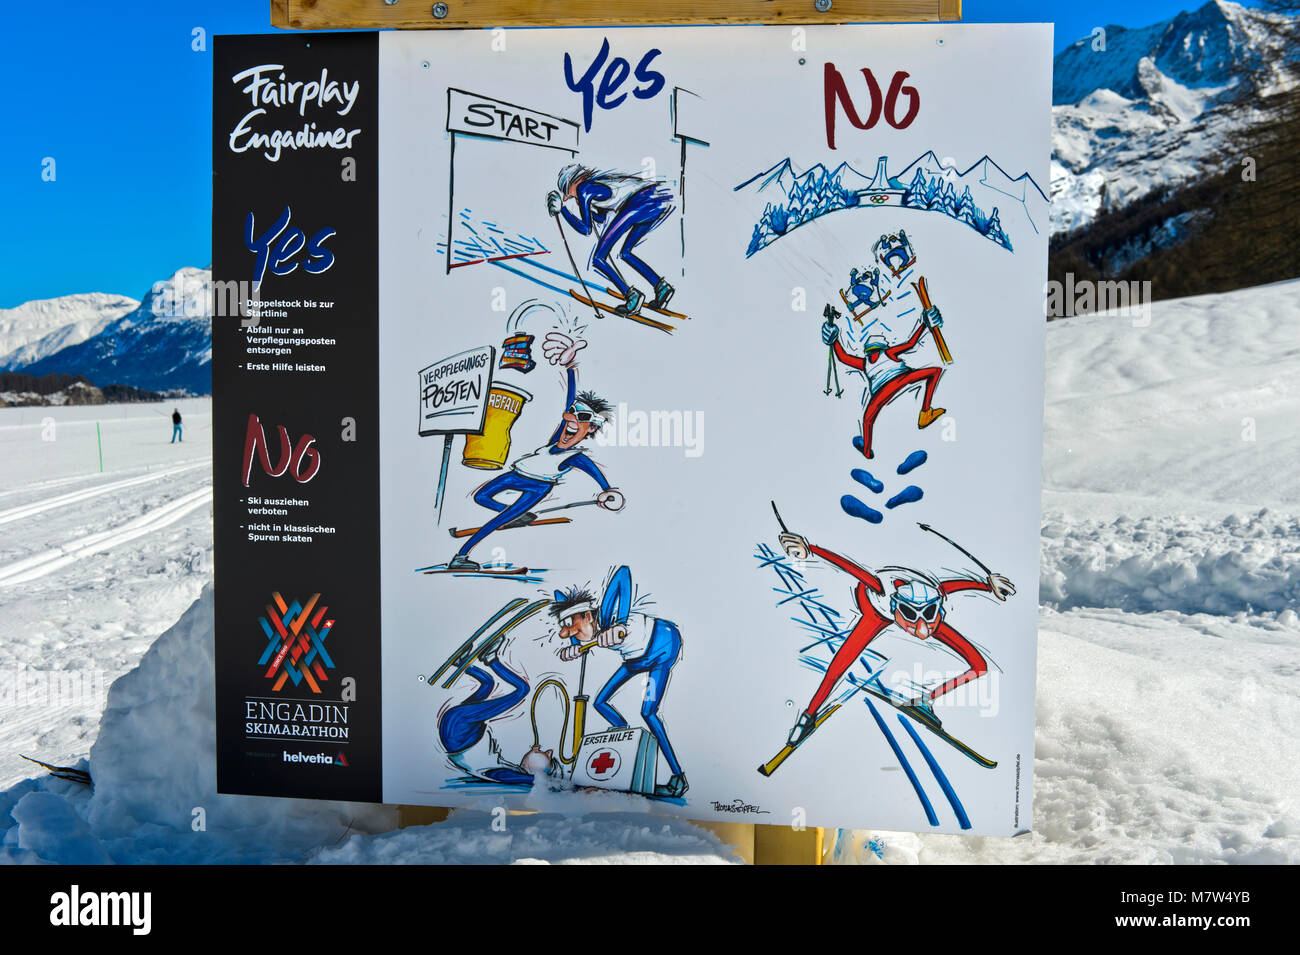 Signpost showing fair-play rules at the Engadin Skimarathon, Maloja, Engadin, Grisons, Switzerland - Stock Image